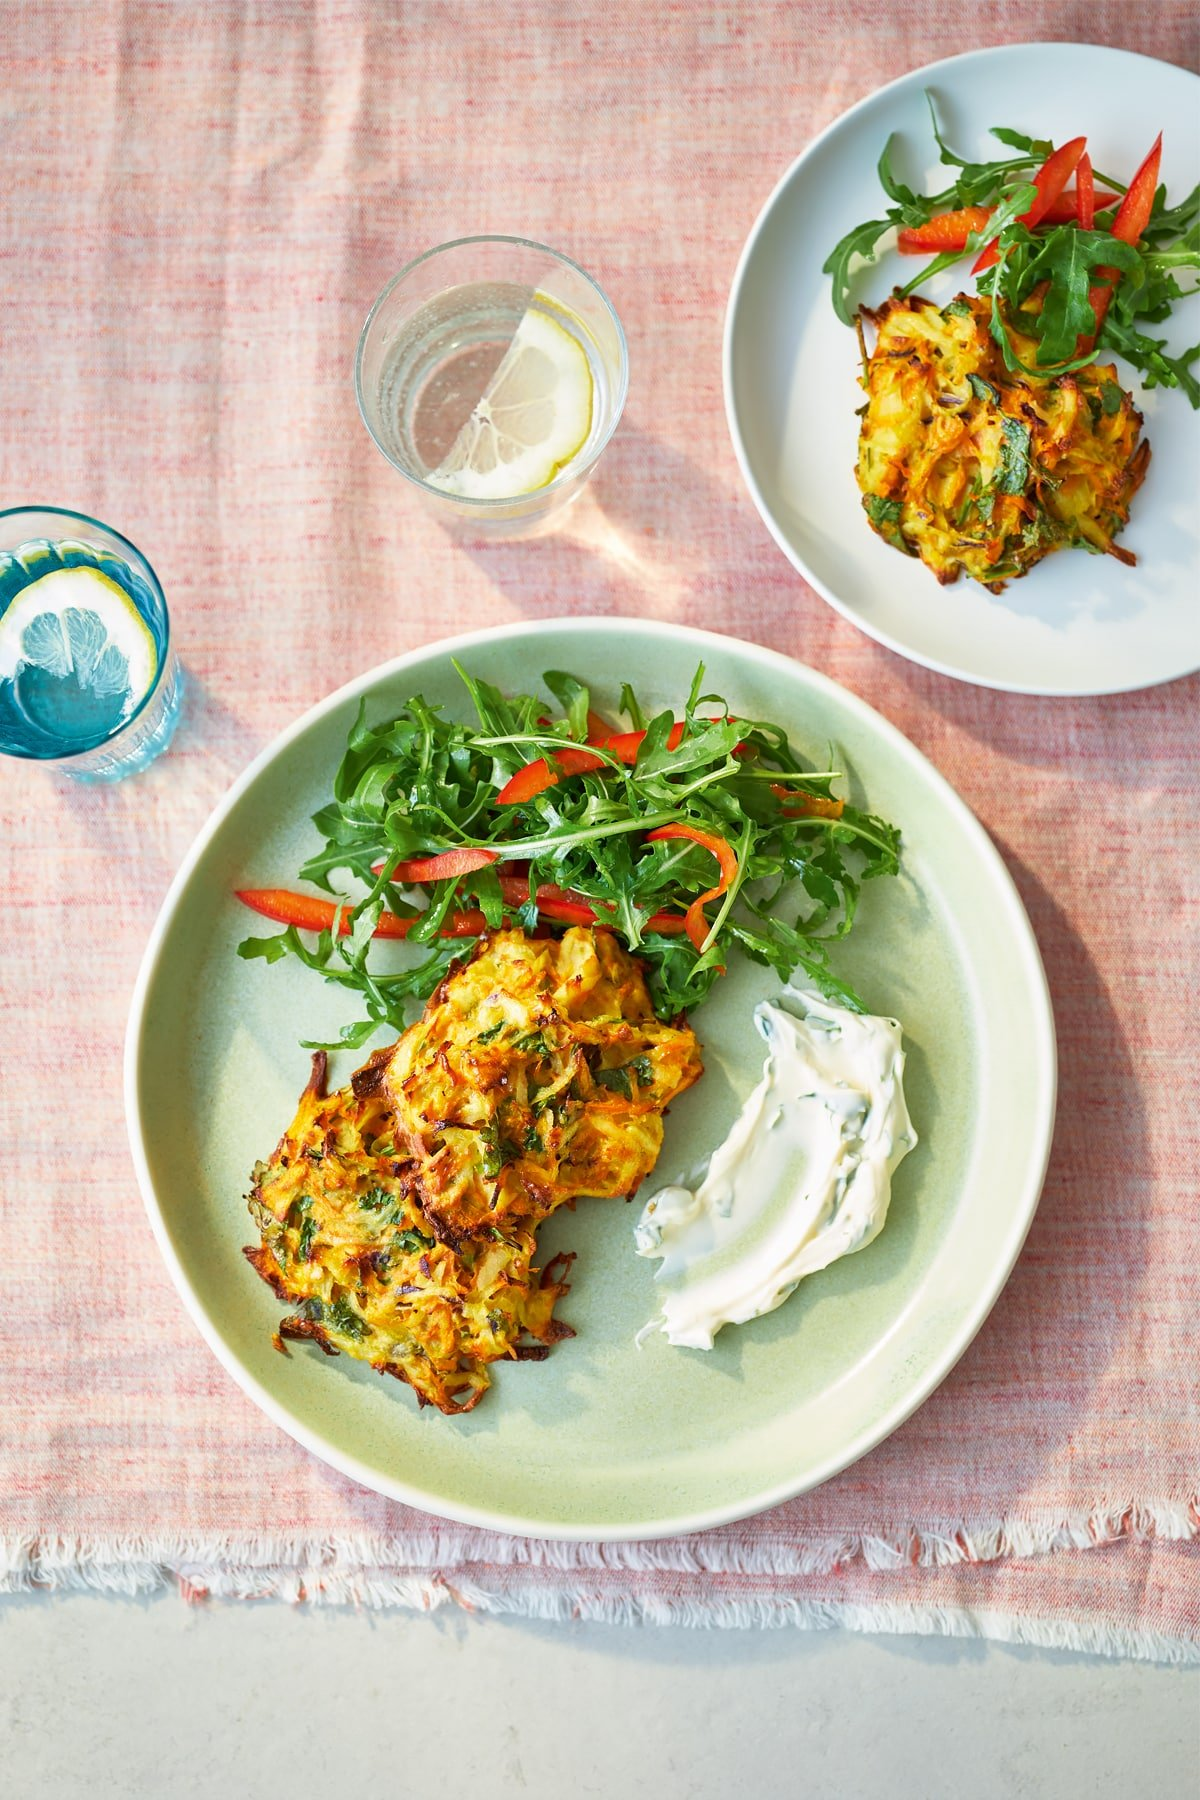 Two plates topped with carrot patties and a rocket and pepper salad.